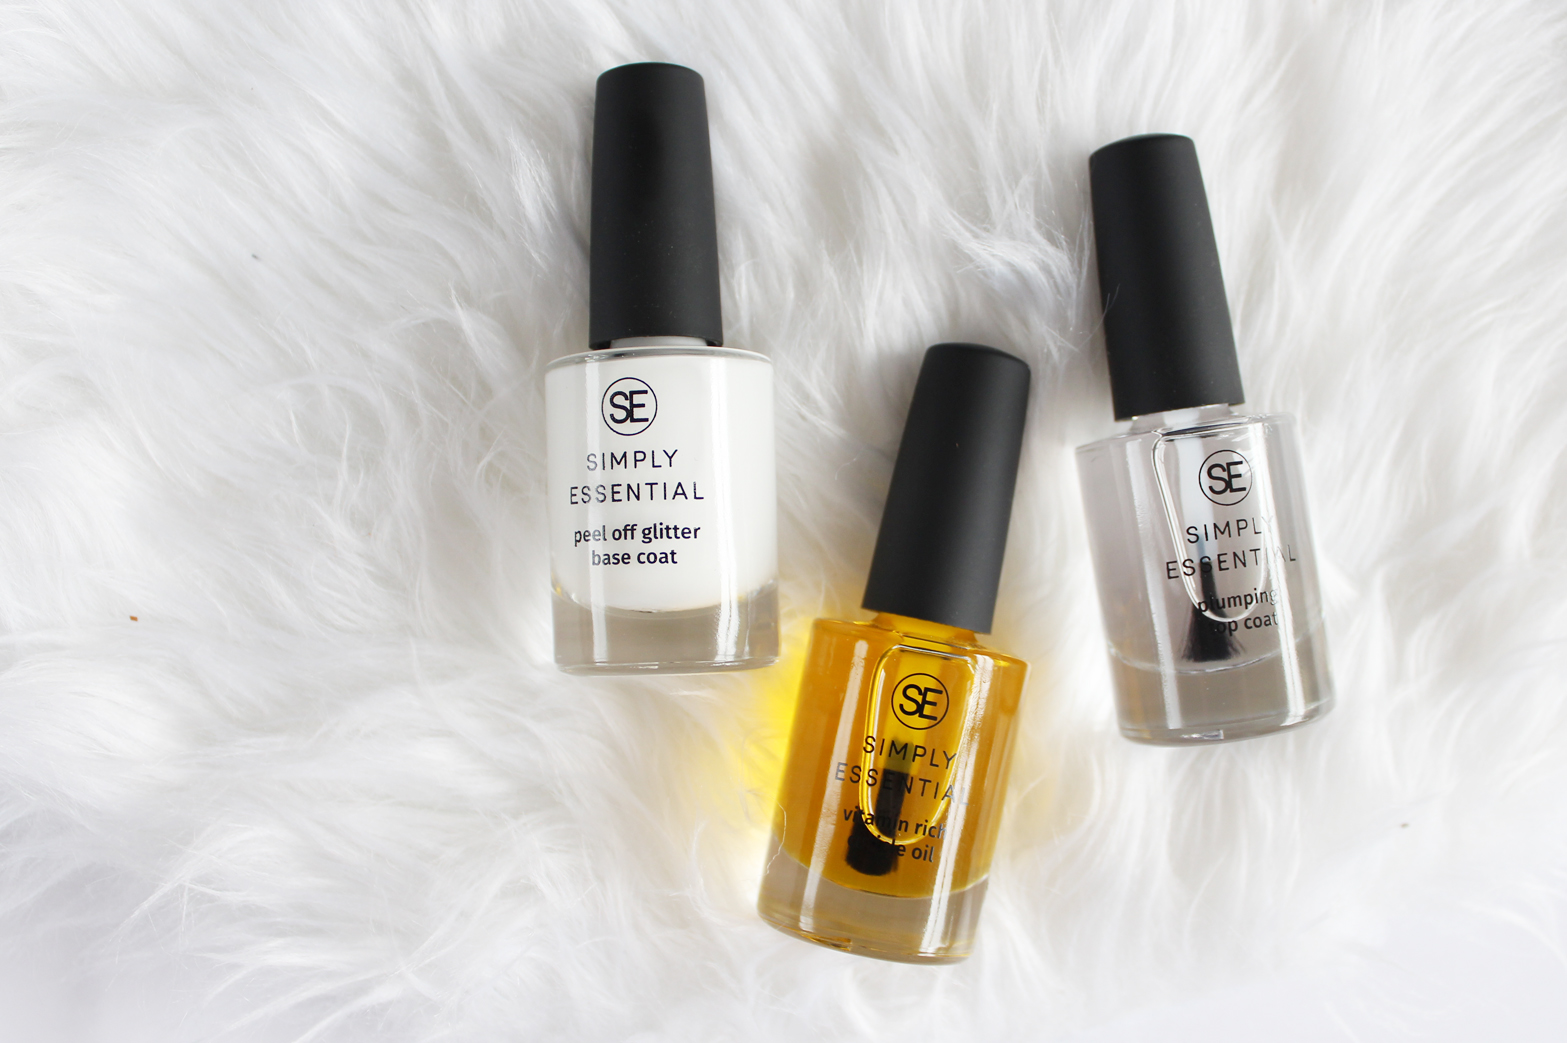 SIMPLY ESSENTIAL | Nail Care Range - Review - CassandraMyee